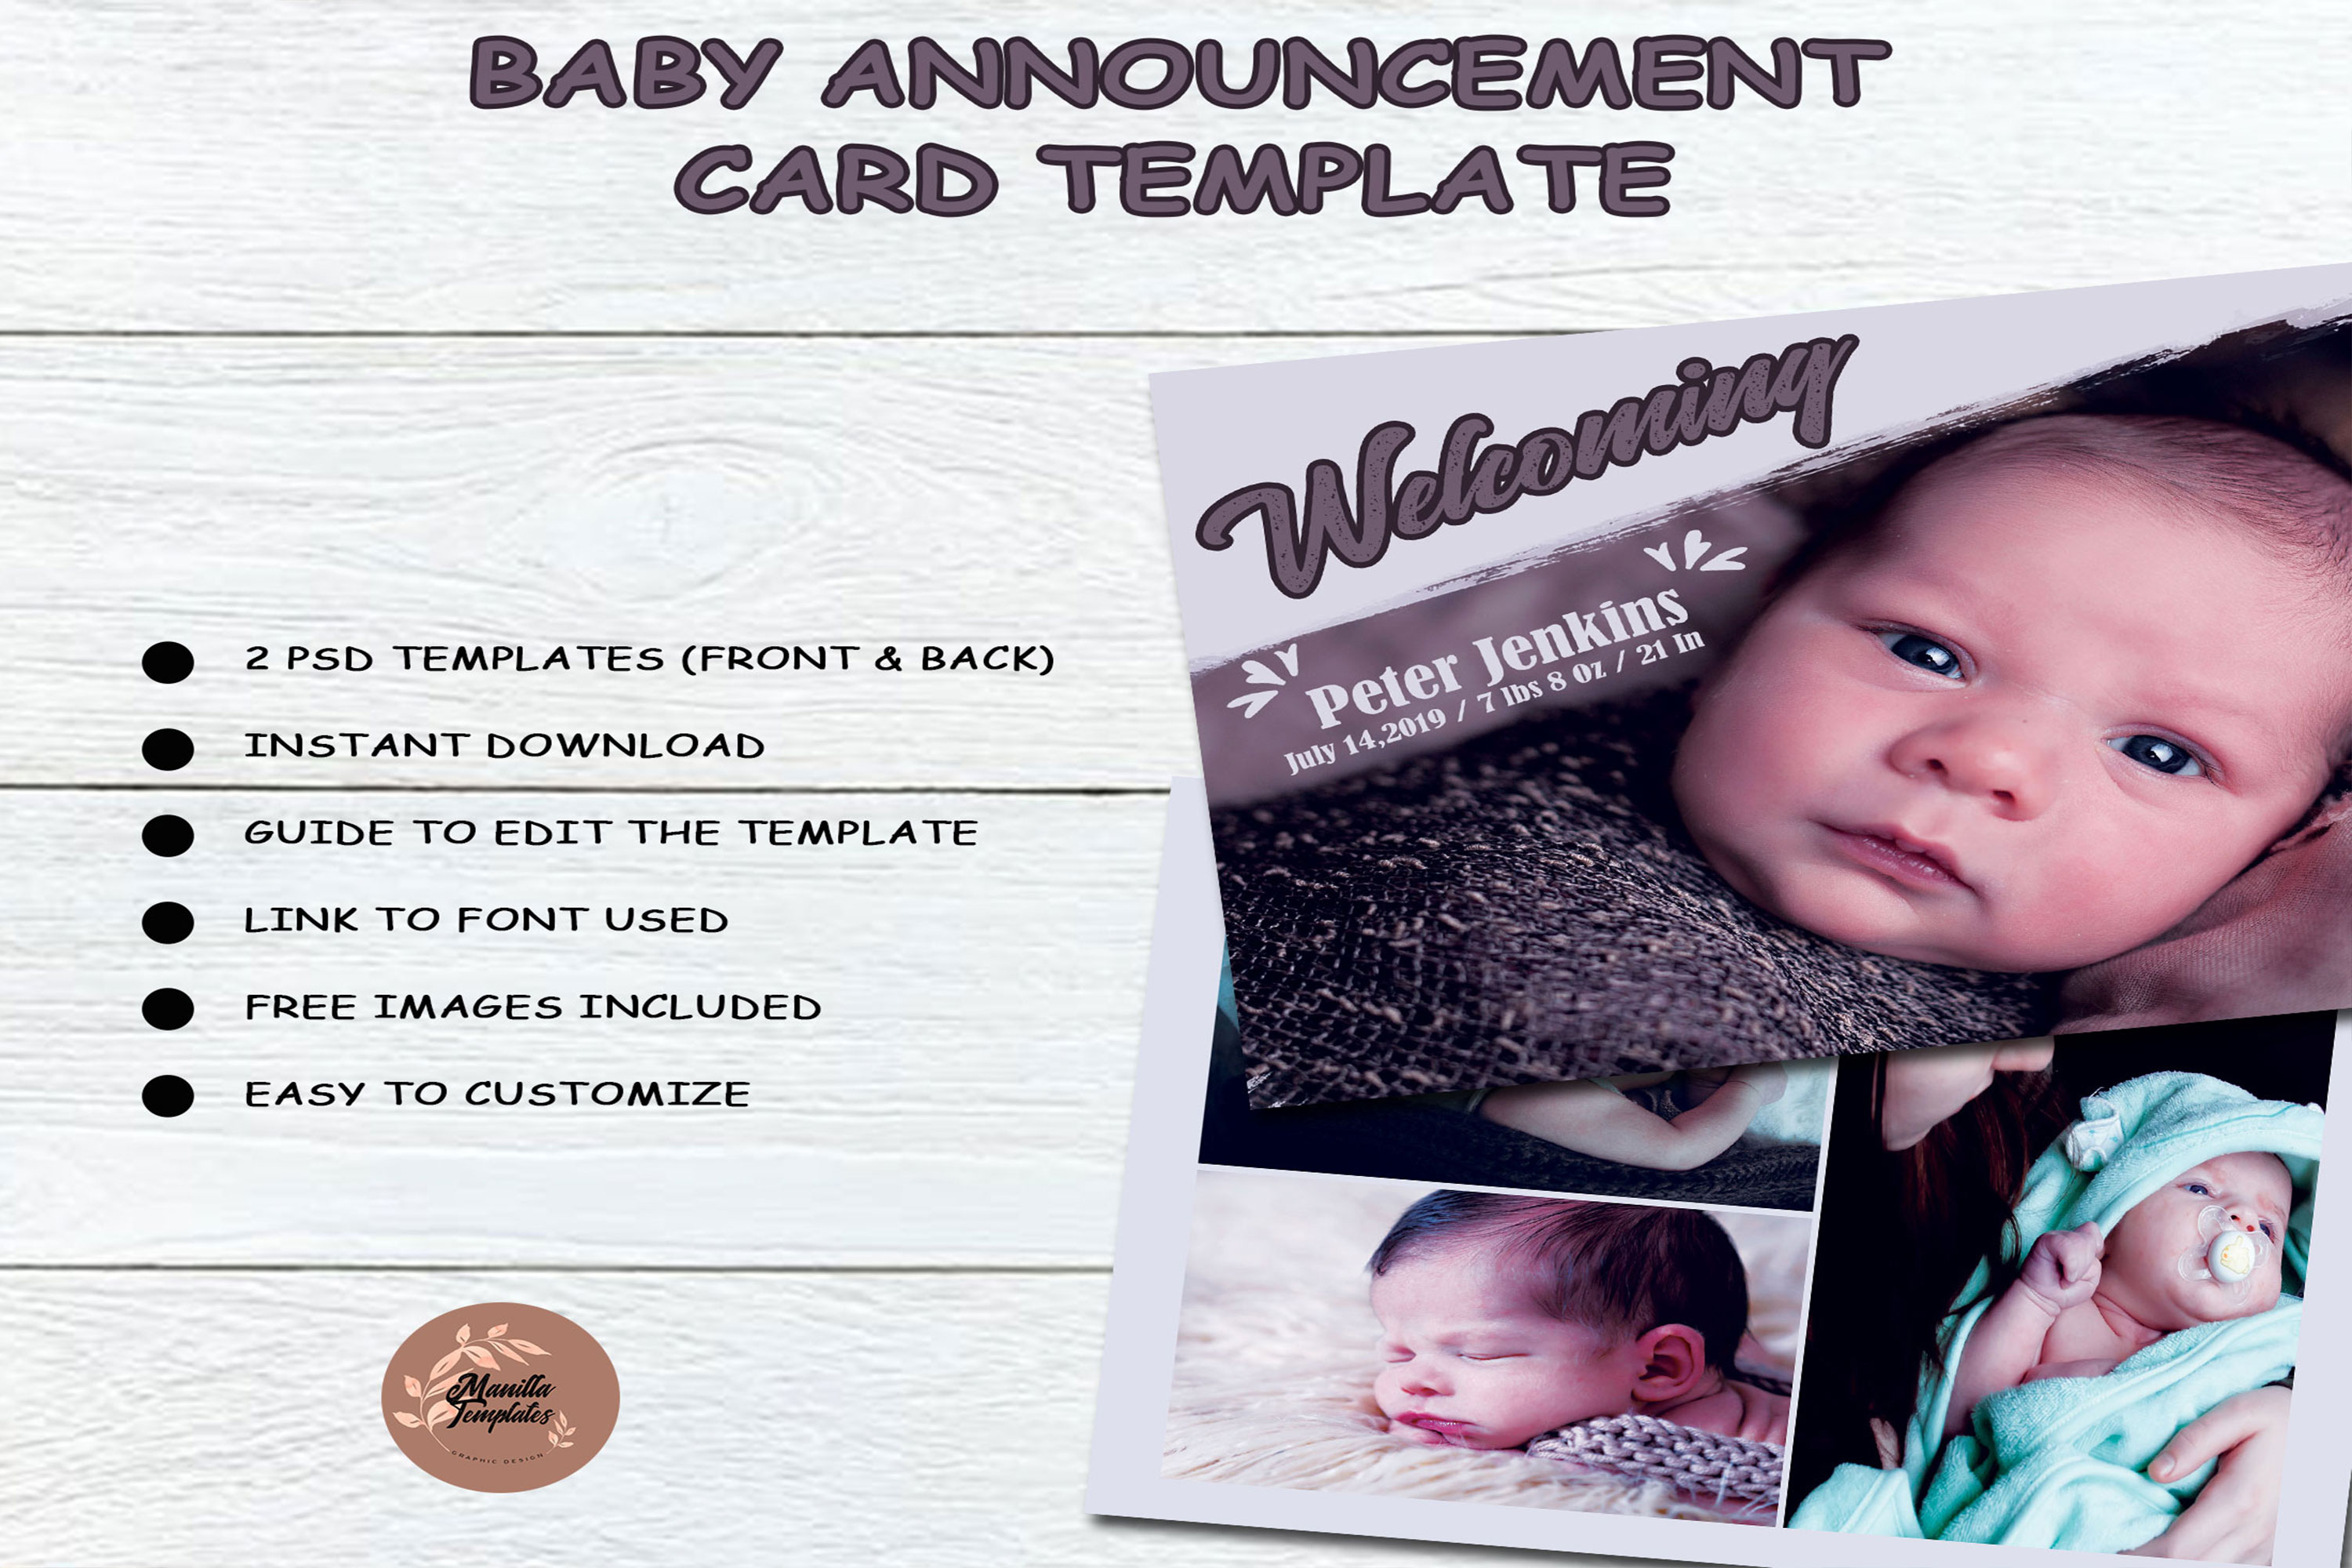 Baby Shower Announcement Card Template example image 4